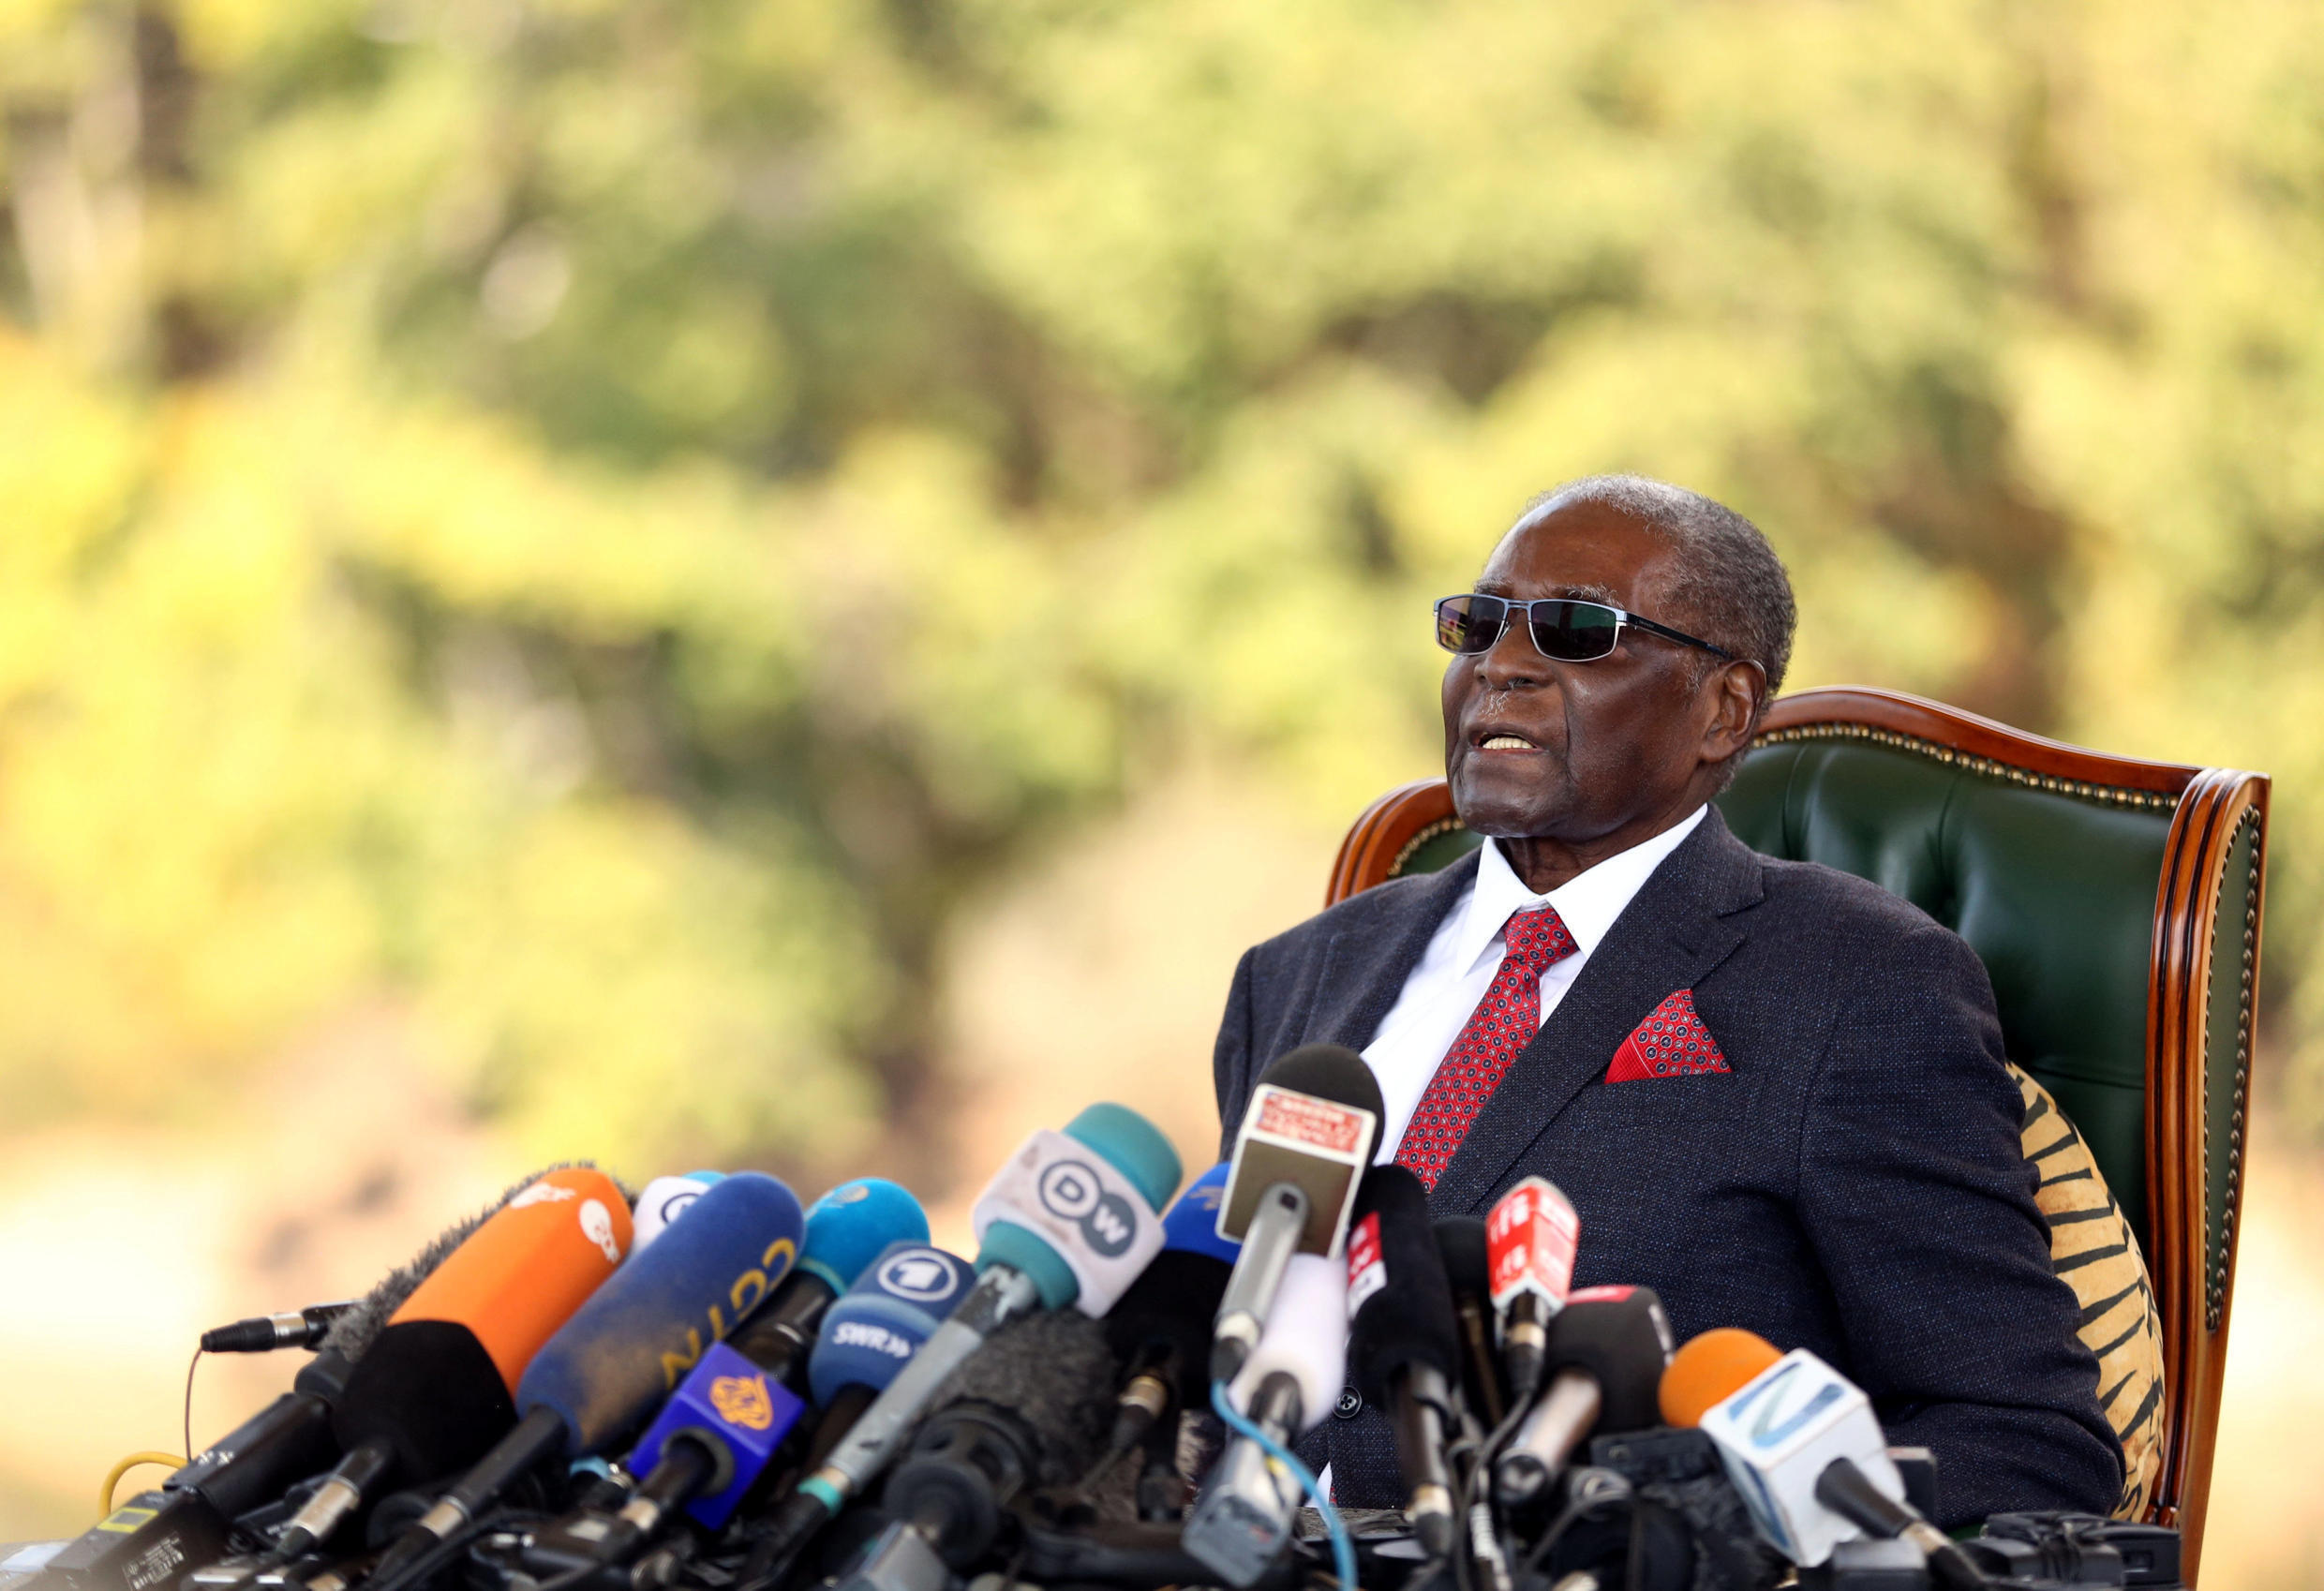 Zimbabwe's former president Robert Mugabe during a press conference at his private residence in Harare, 29 July 2018.